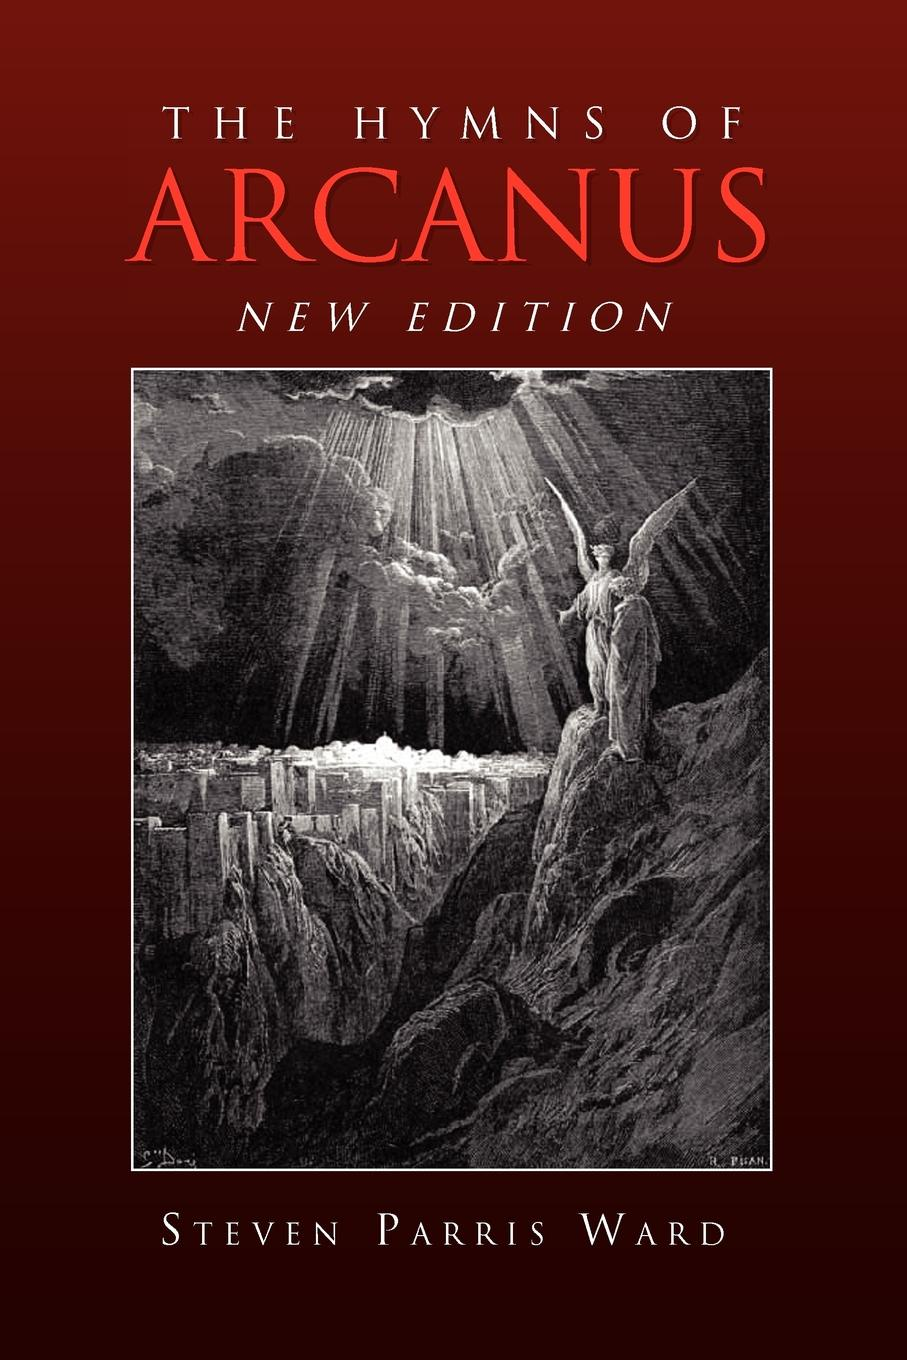 Steven Parris Ward The Hymns of Arcanus (New Edition). And Other Poems Edition)